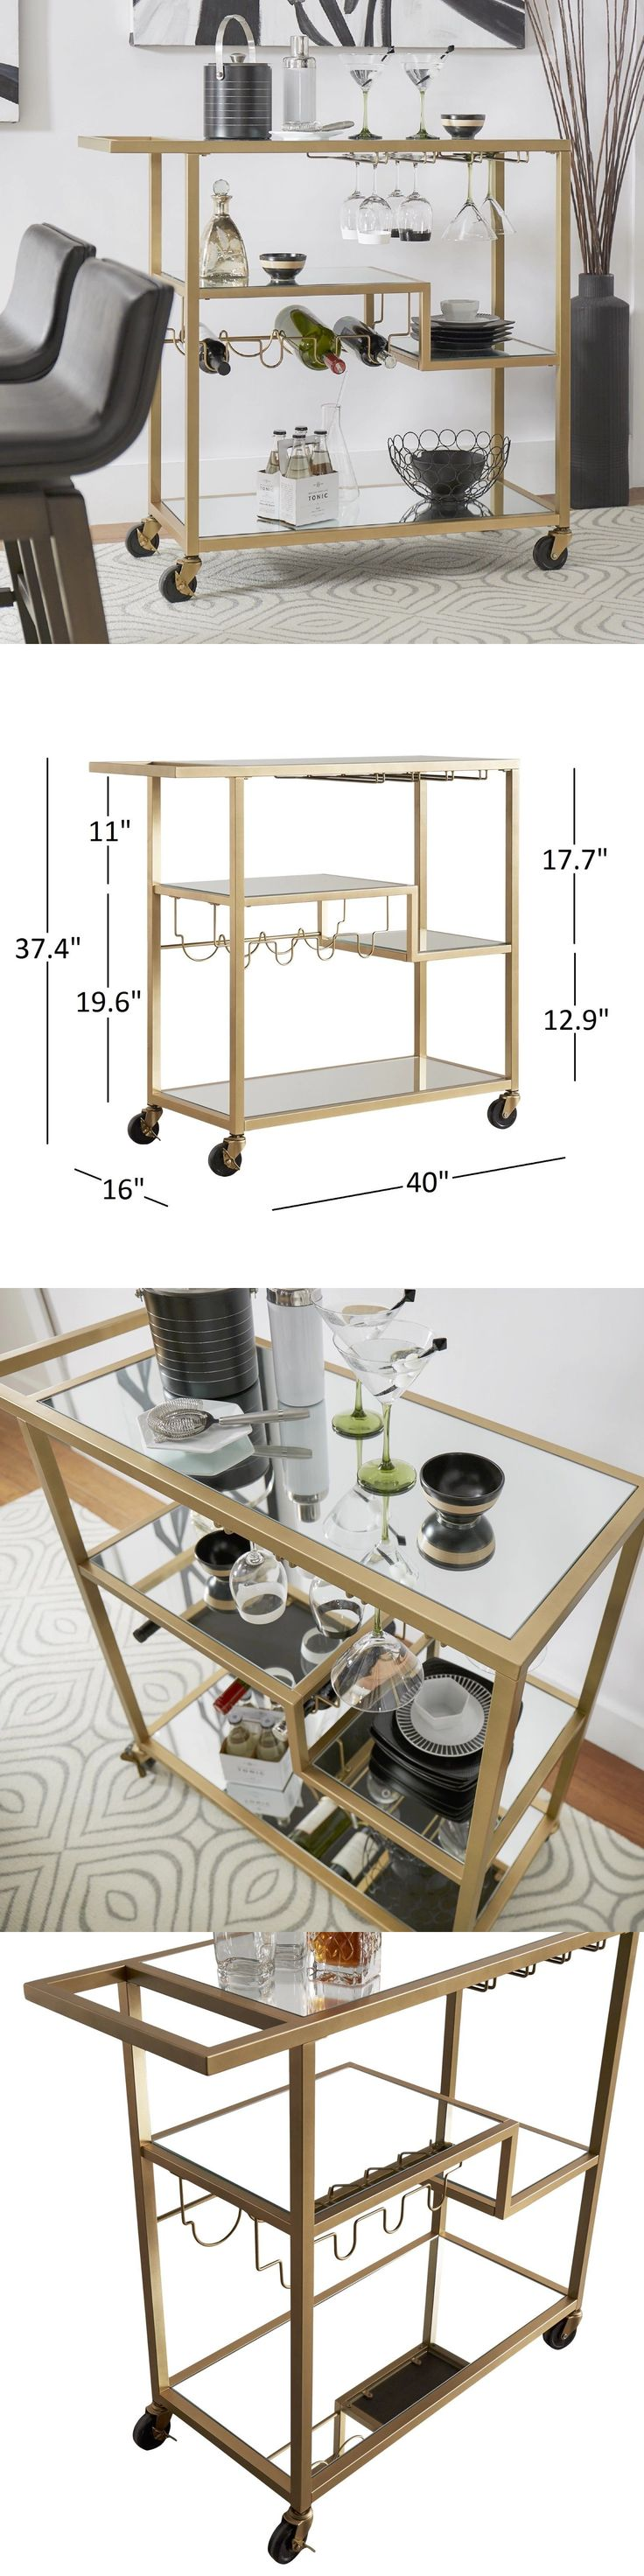 Bar Carts and Serving Carts 183320: Modern Bar Cart Wine Serving Mirror Glass Bottles Gold Color Rolling Portable -> BUY IT NOW ONLY: $304.95 on eBay!